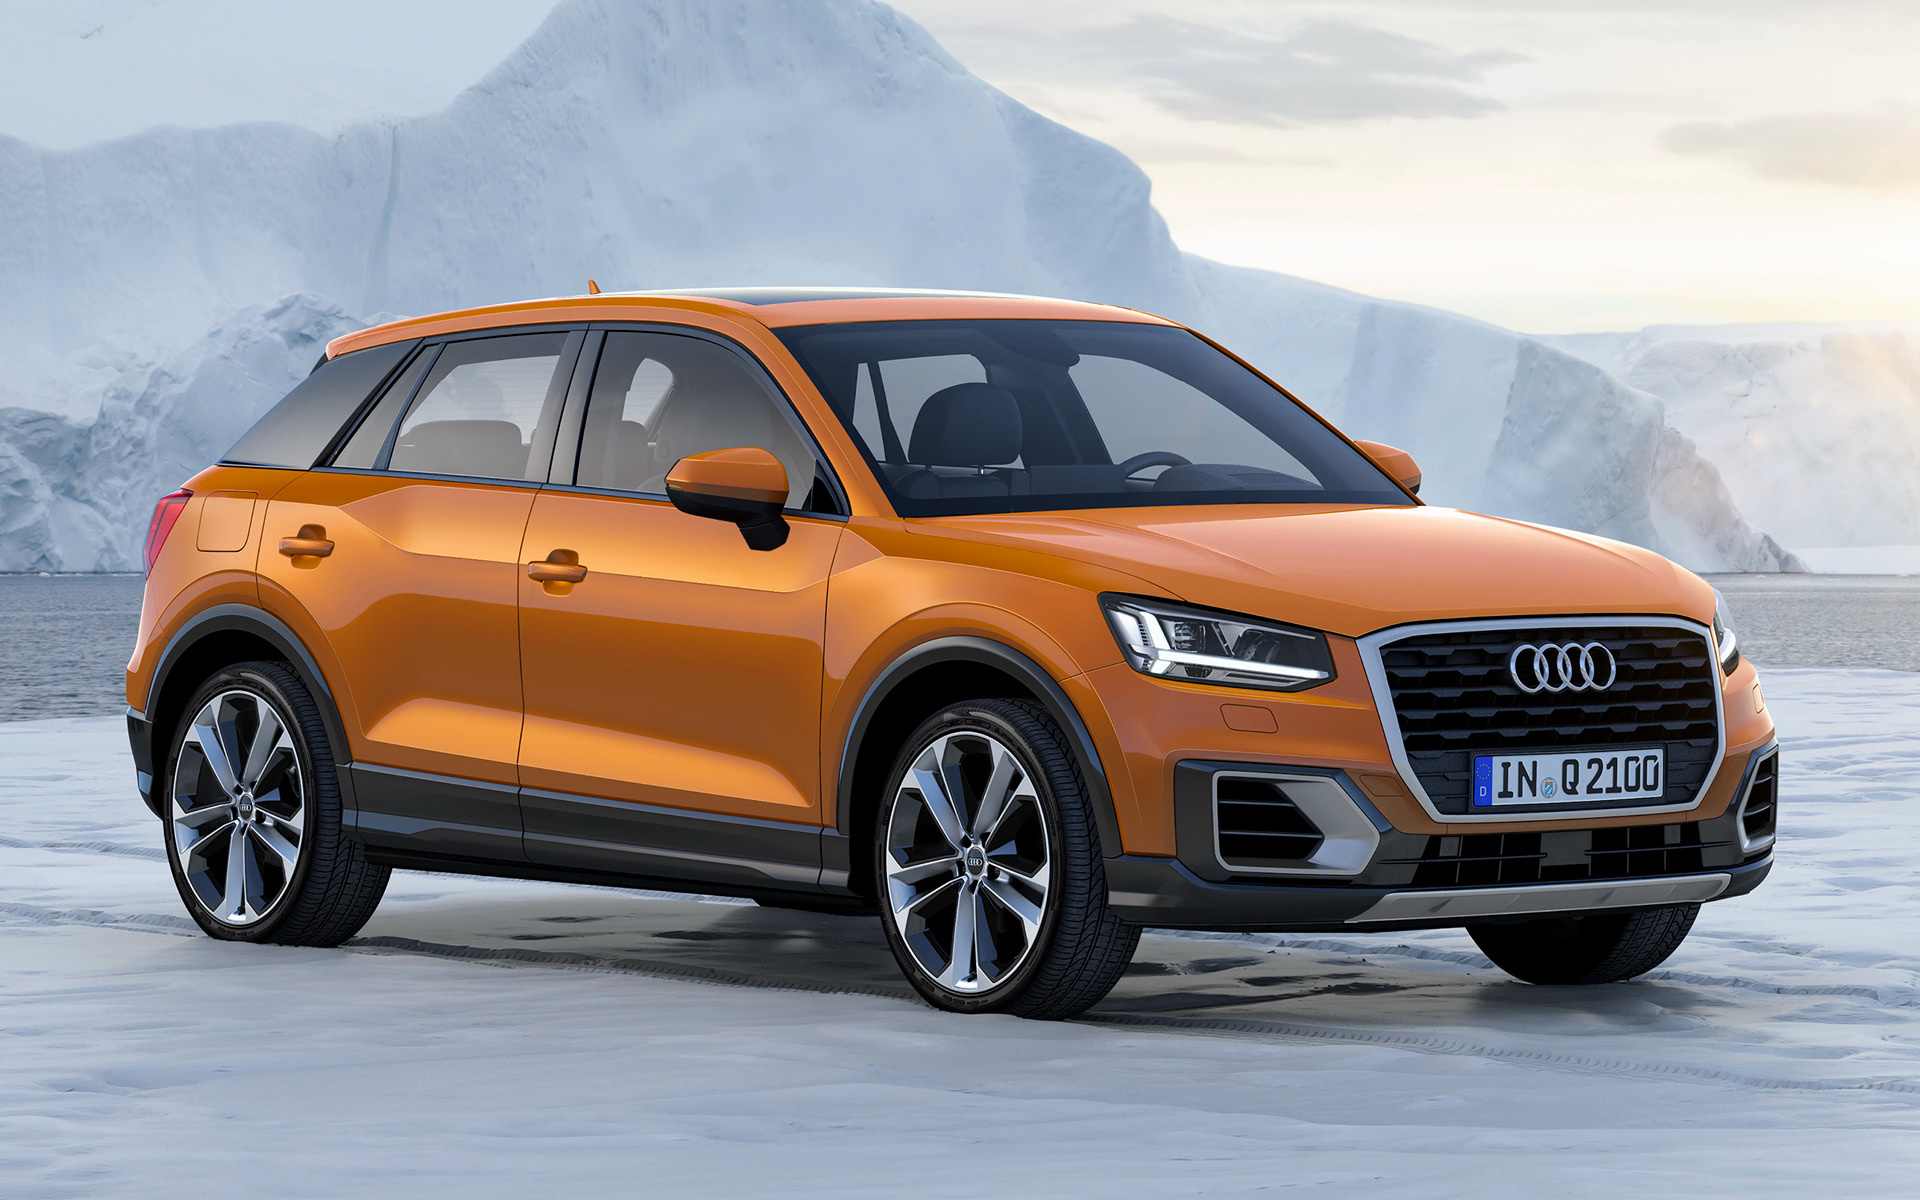 Audi Q2 2016 Wallpapers and HD Images  Car Pixel